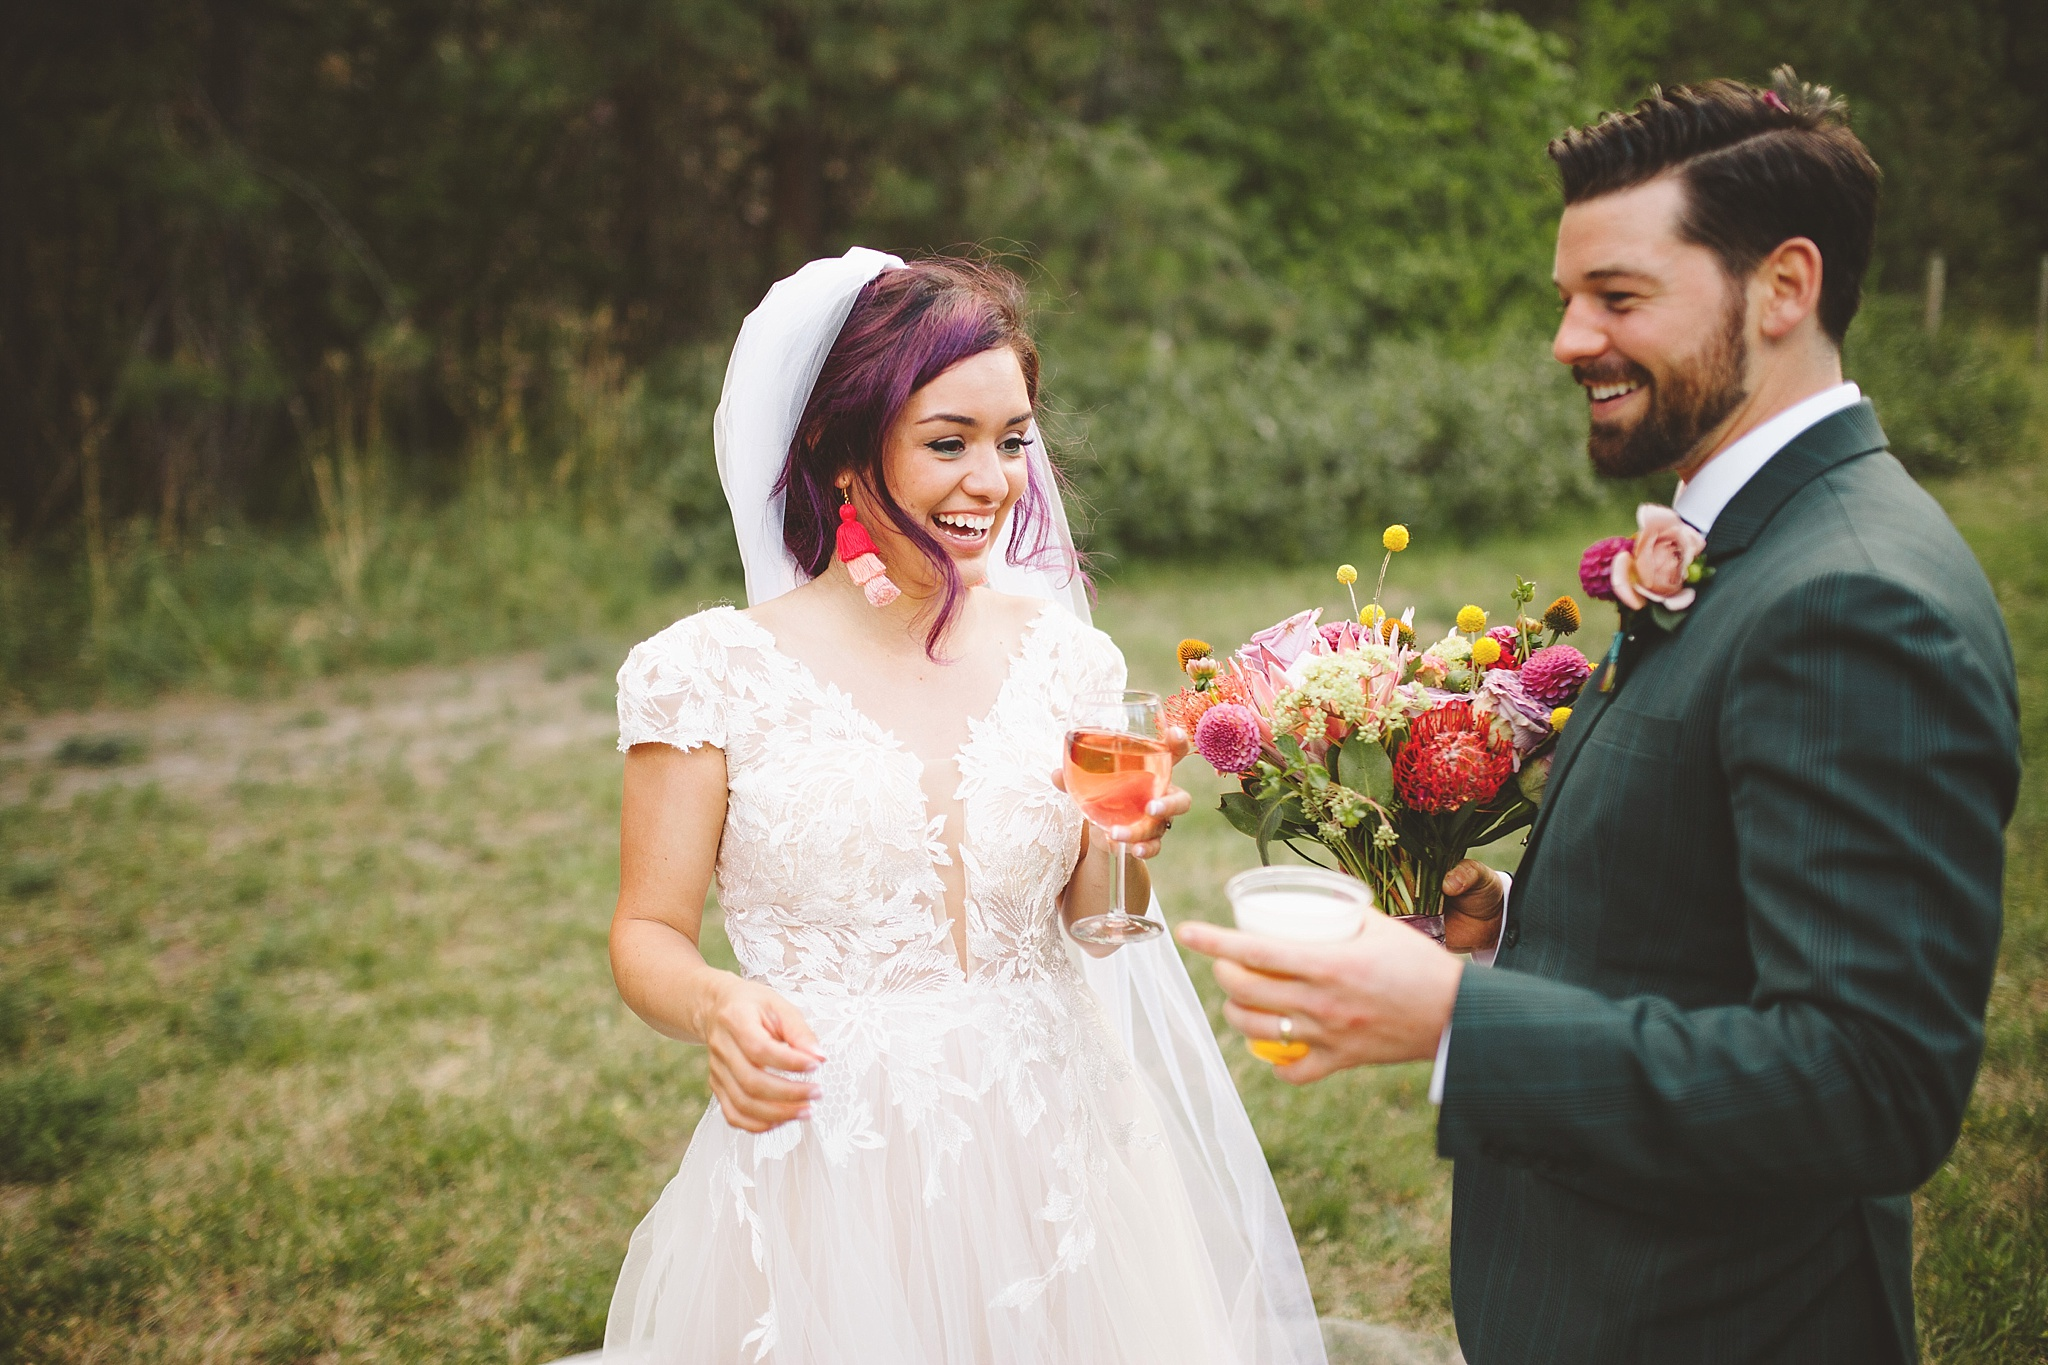 couple laughing together after wedding ceremony